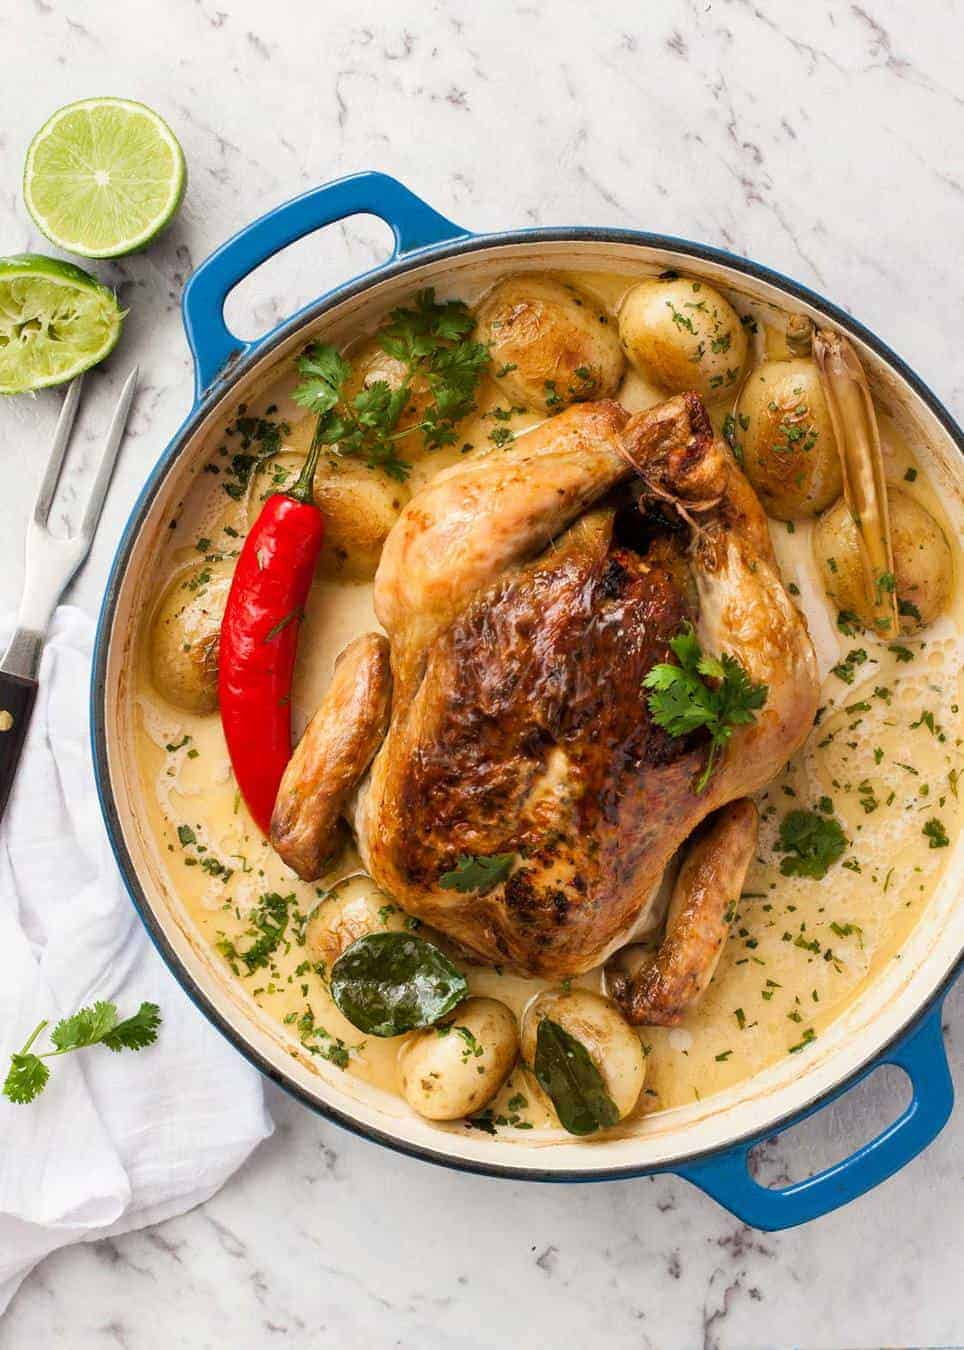 Whole pot roasted chicken in fragrant coconut broth